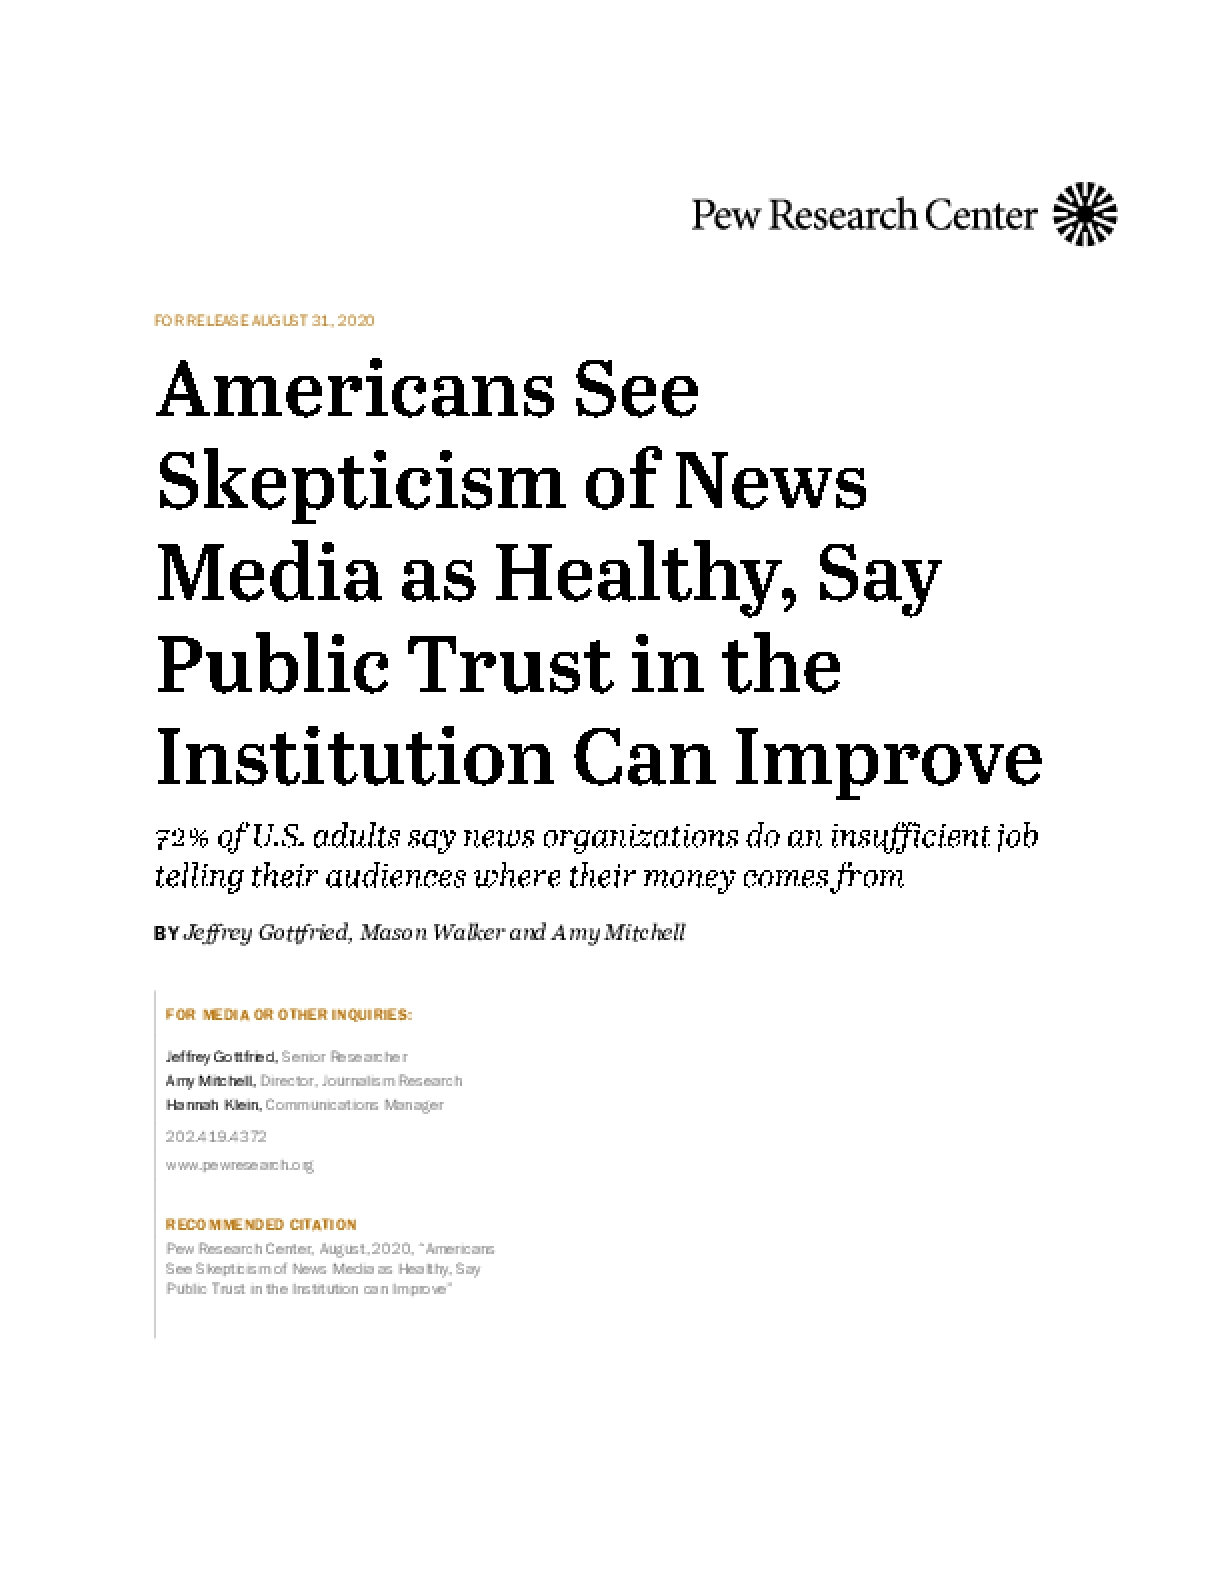 Americans See Skepticism of News Media as Healthy, Say Public Trust in Institutions Can Improve